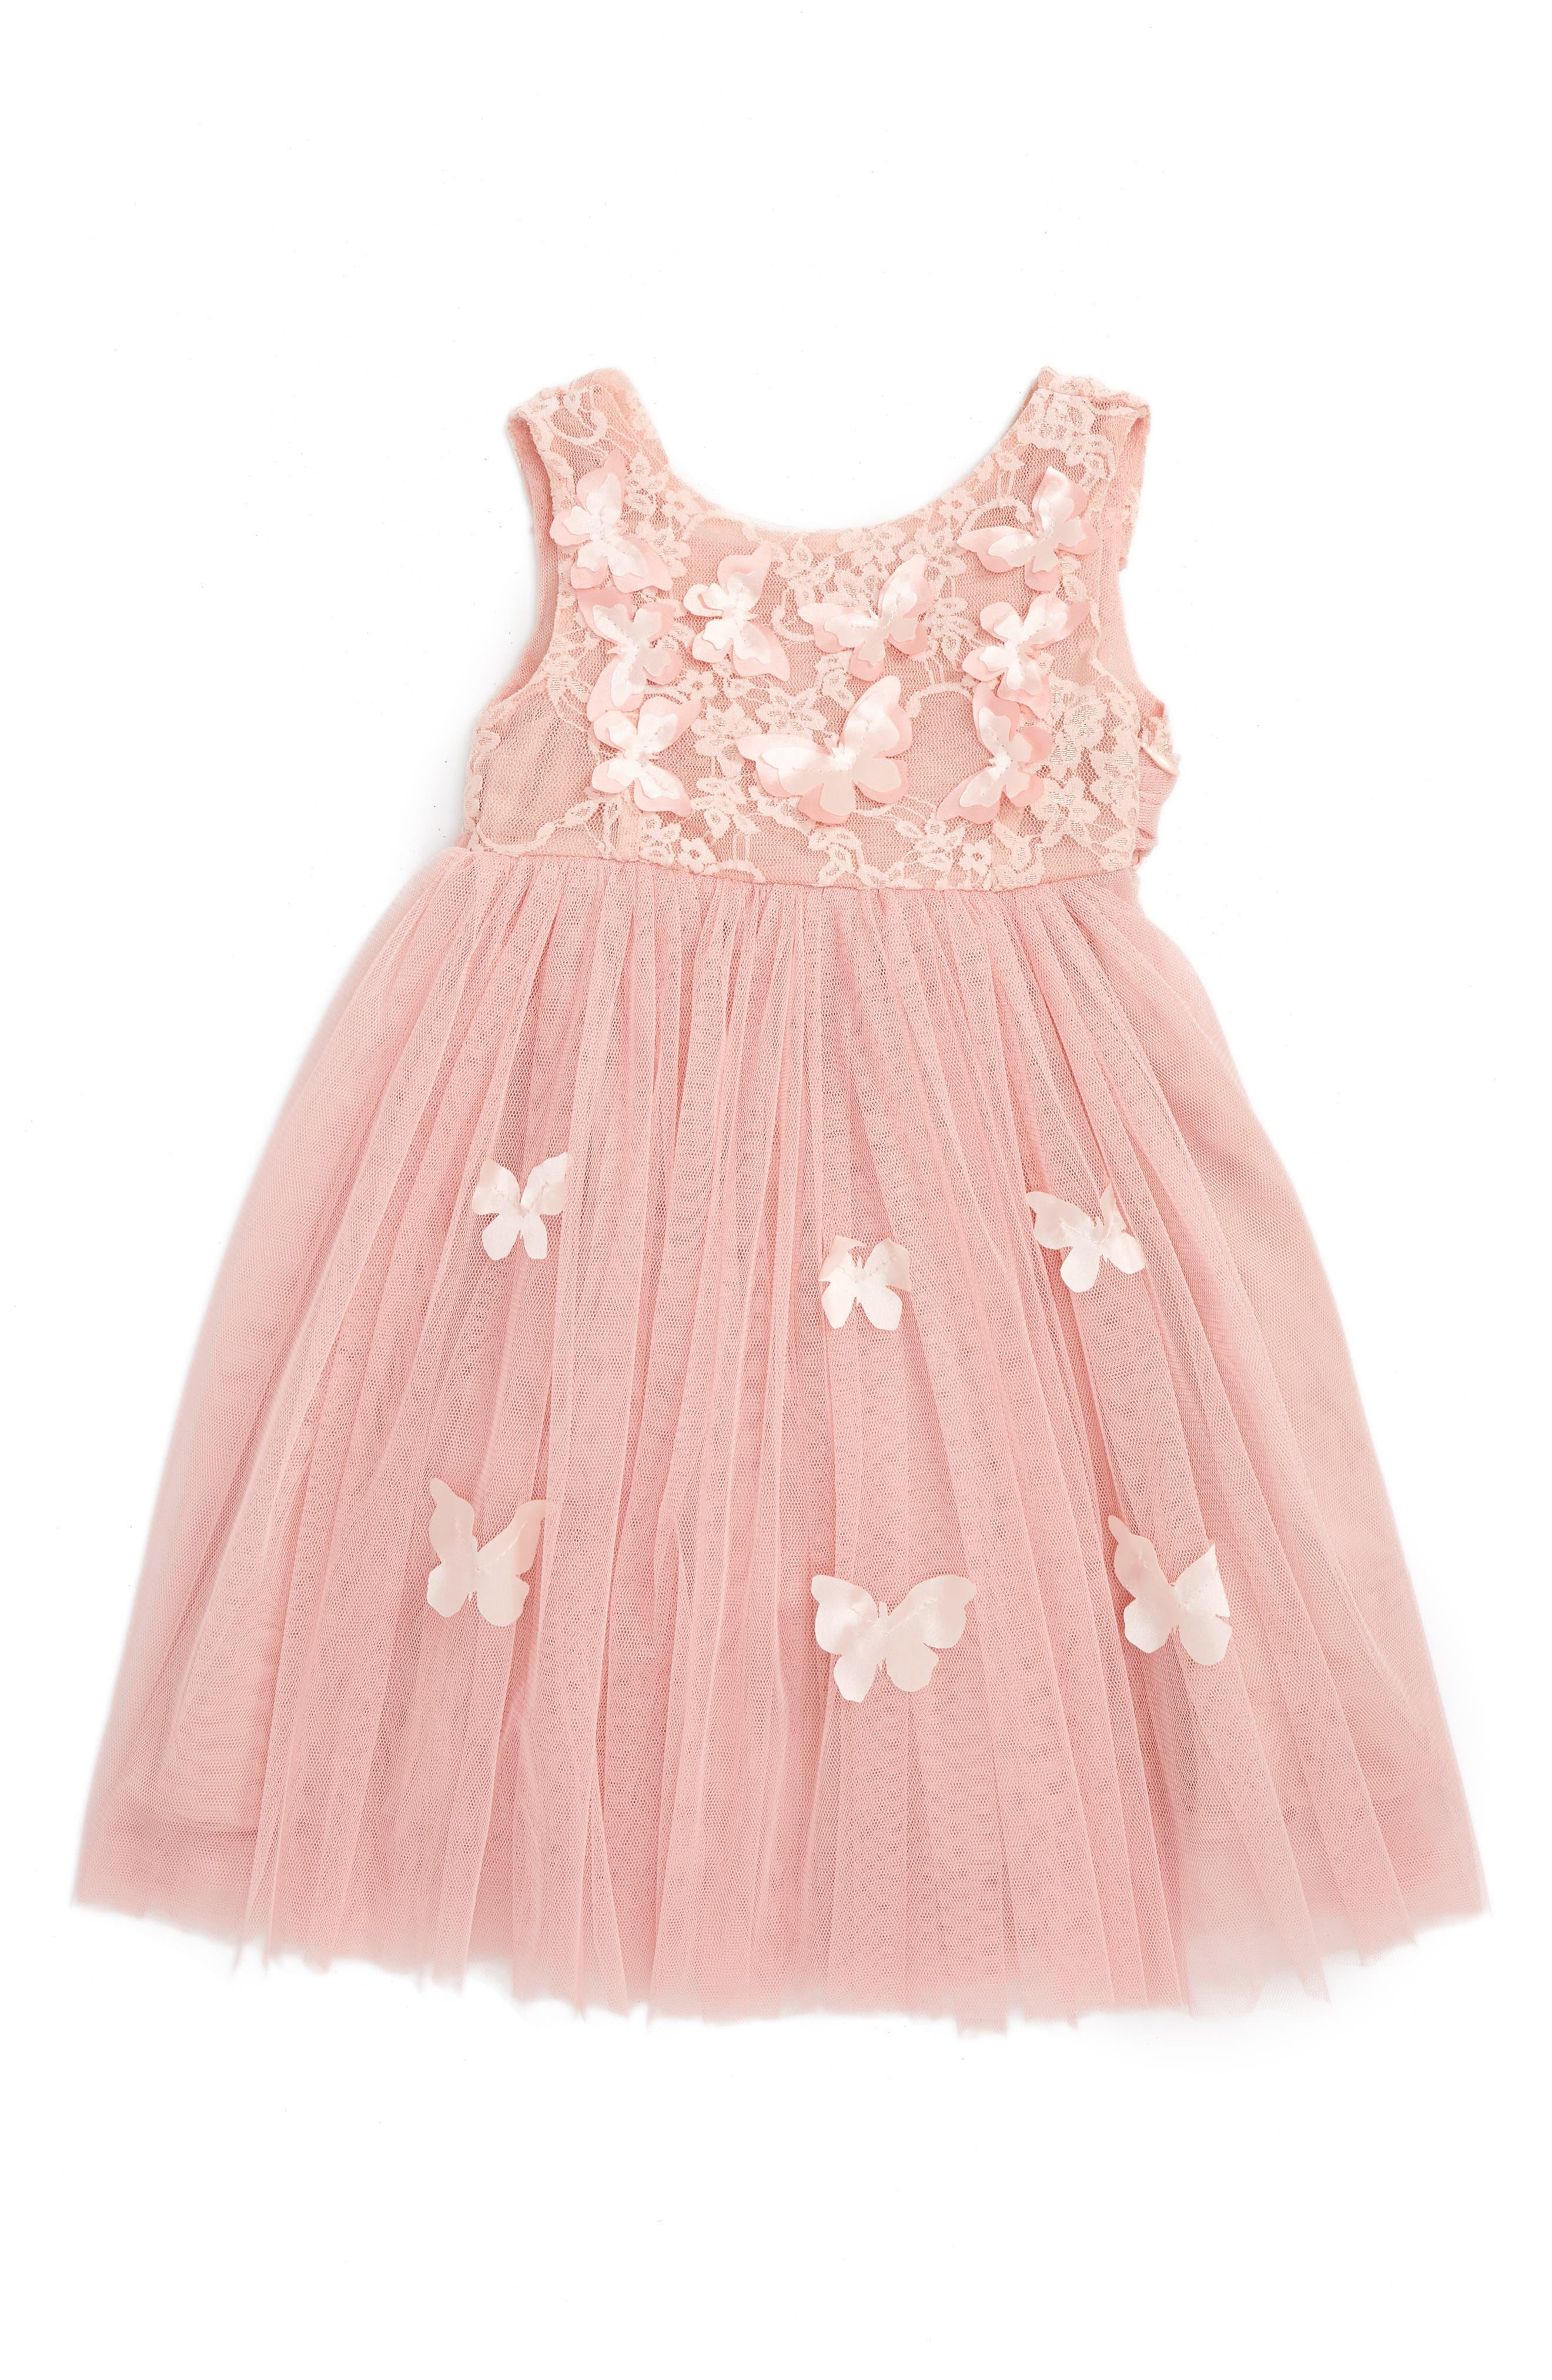 Butterfly Sleeveless Dress,                         Main,                         color, DUSTY PINK